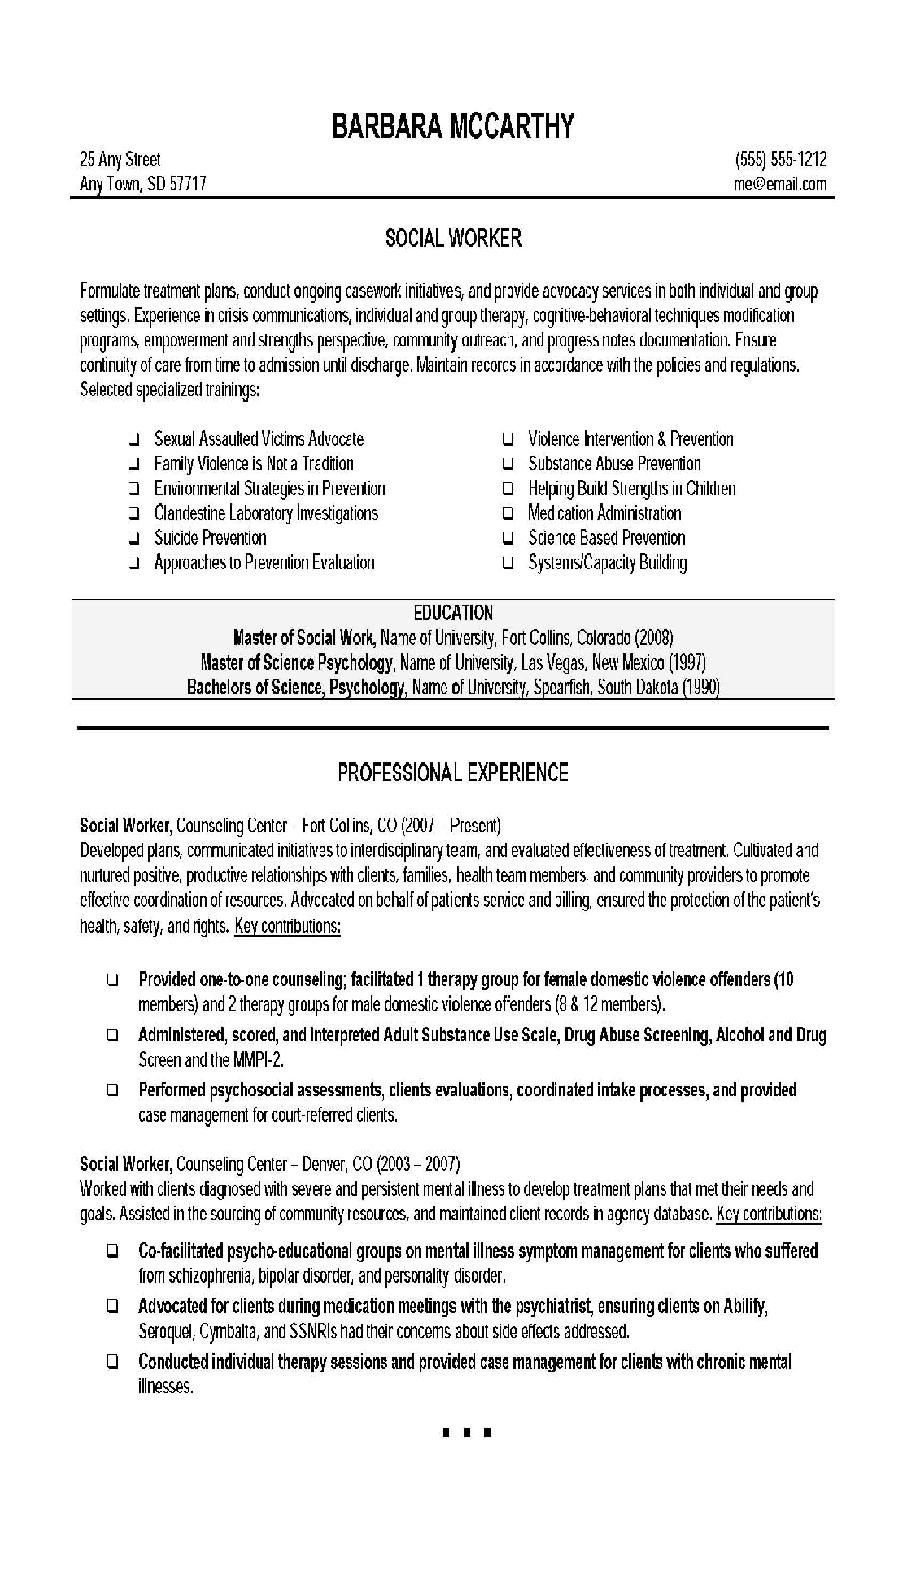 Social Worker Resume 4 Work Sample